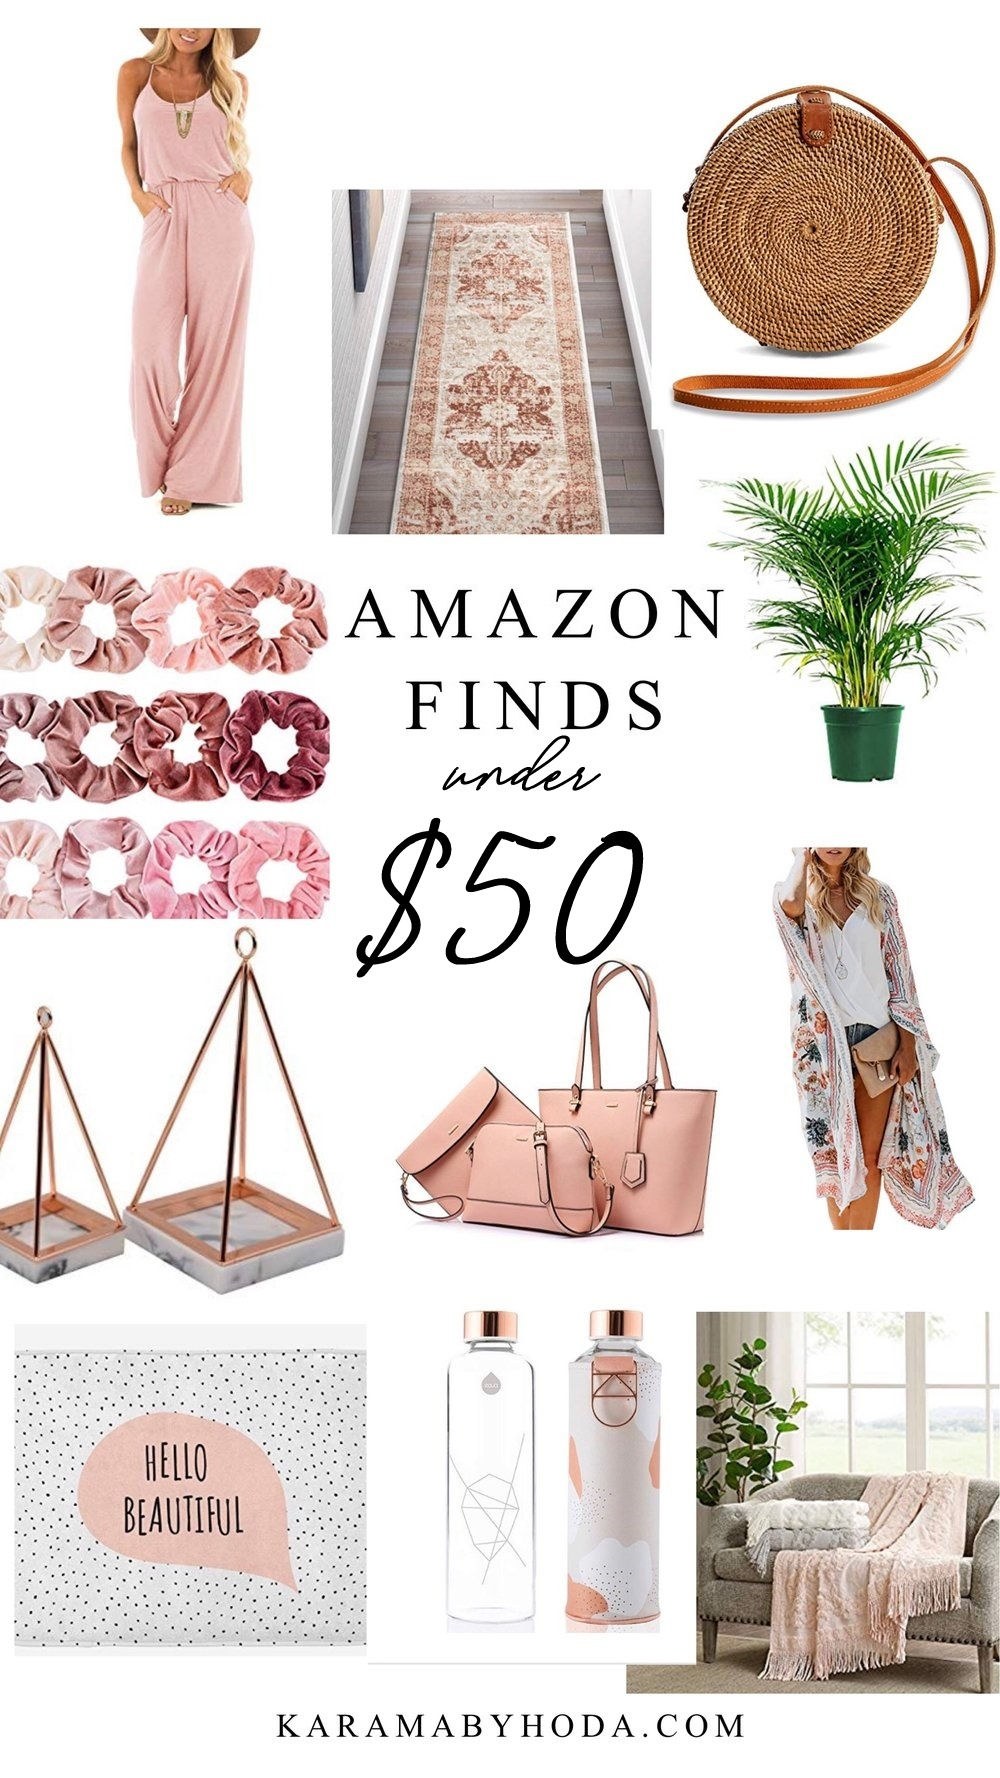 Amazon+Finds-+Prime+Day-+Blush+Pink+Decor+Summer+Favs.jpg